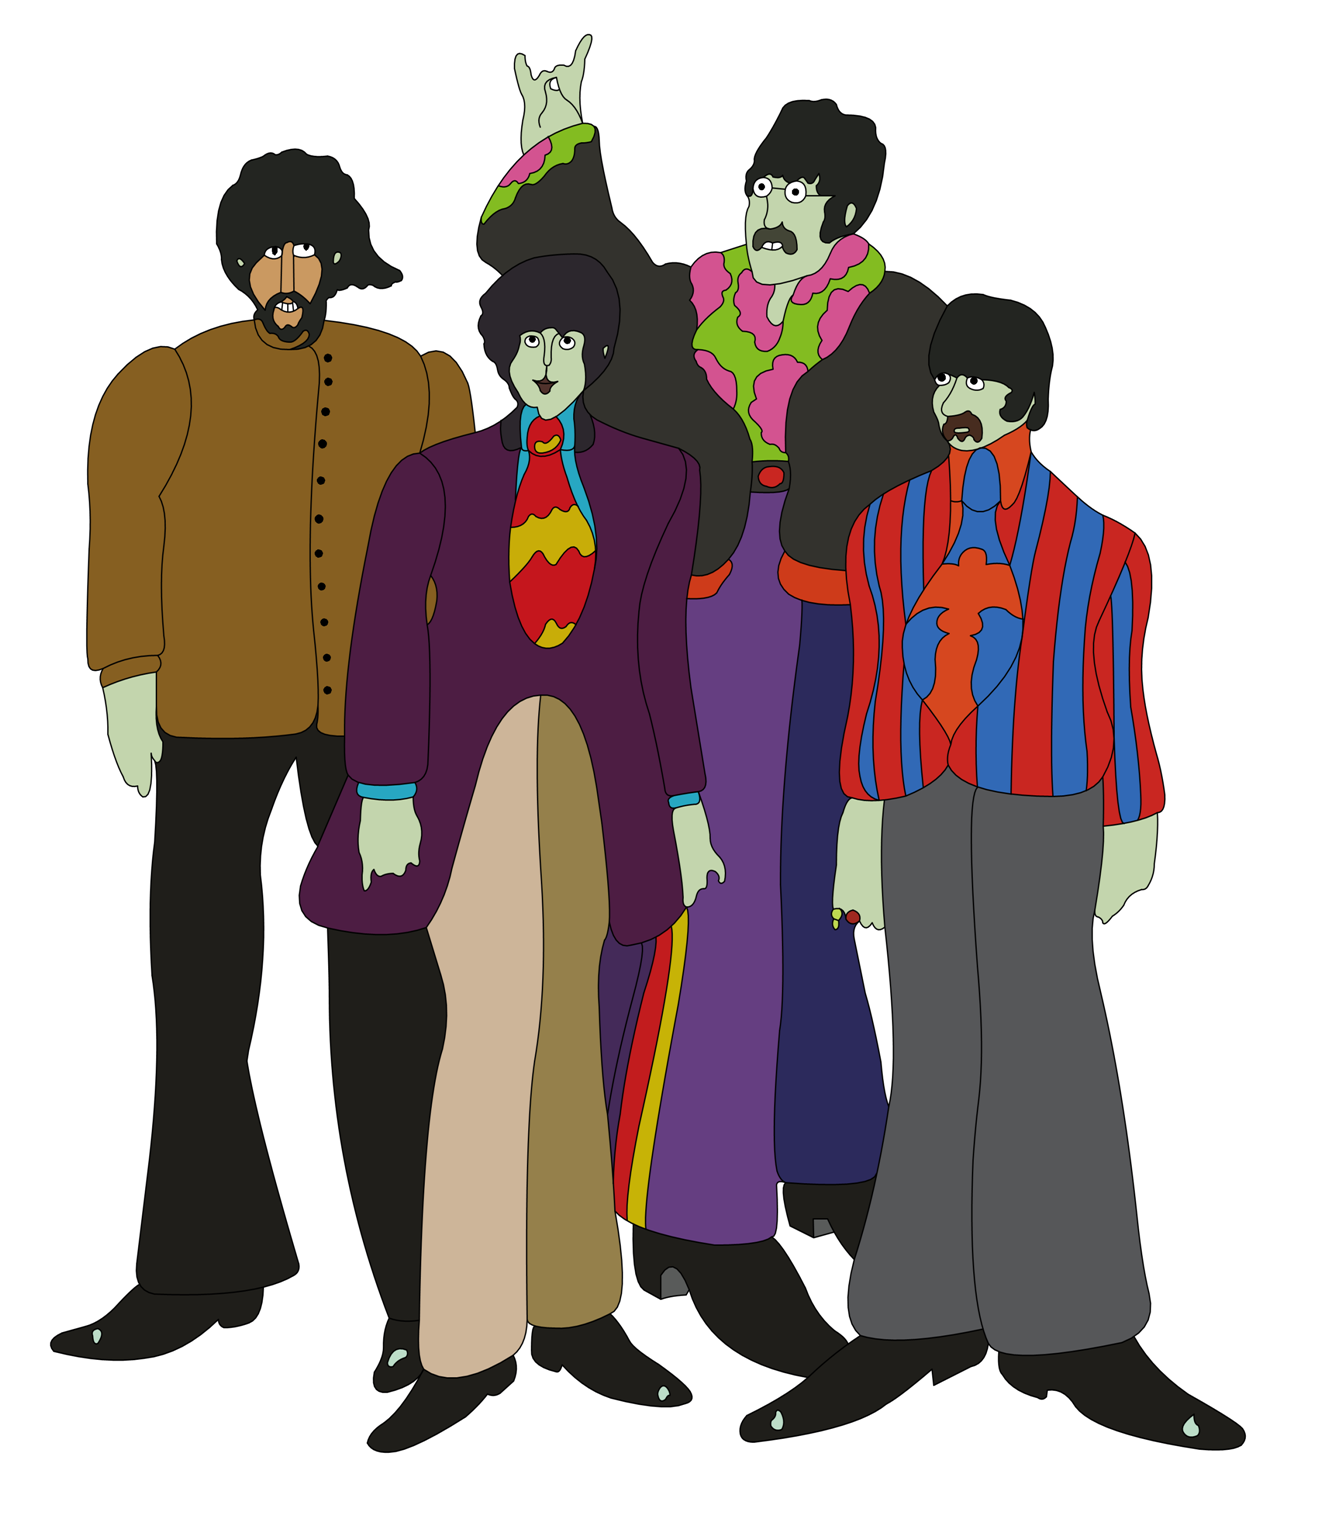 Beatles Yellow Submarine Cover Art by Vaiktorizer